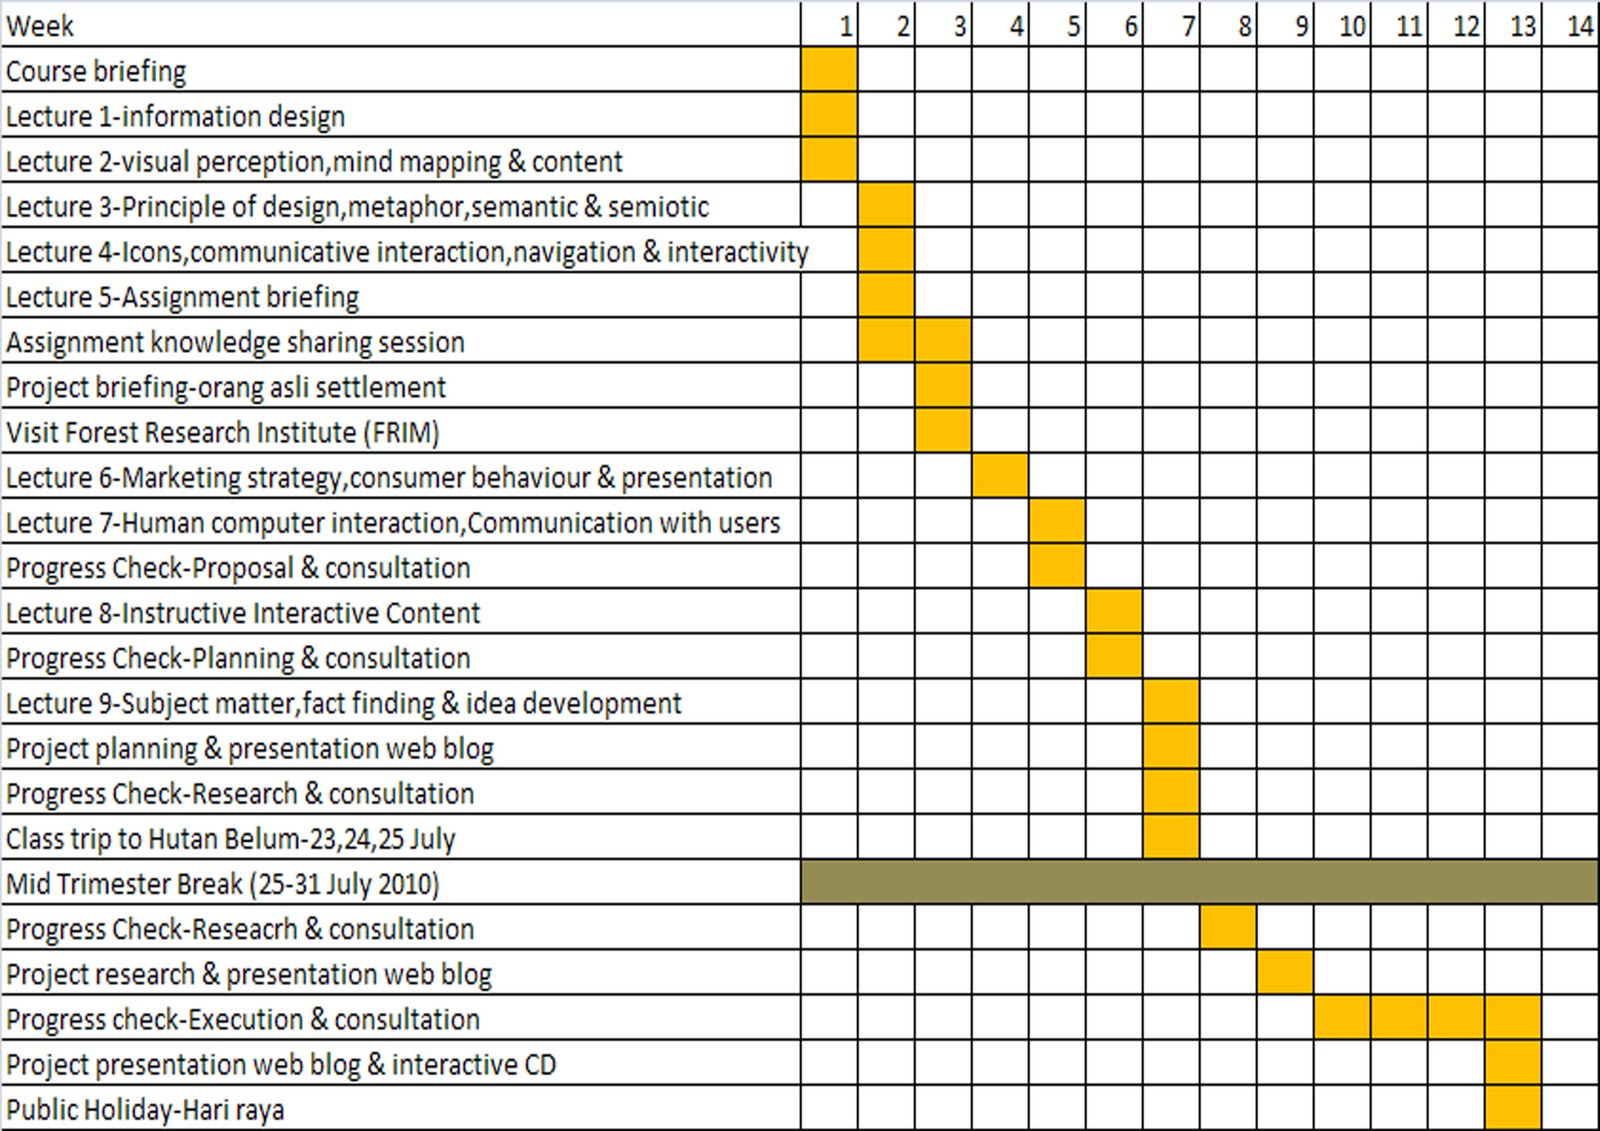 Phd research proposal gantt chart also truly easy to use online rh thetomatotart